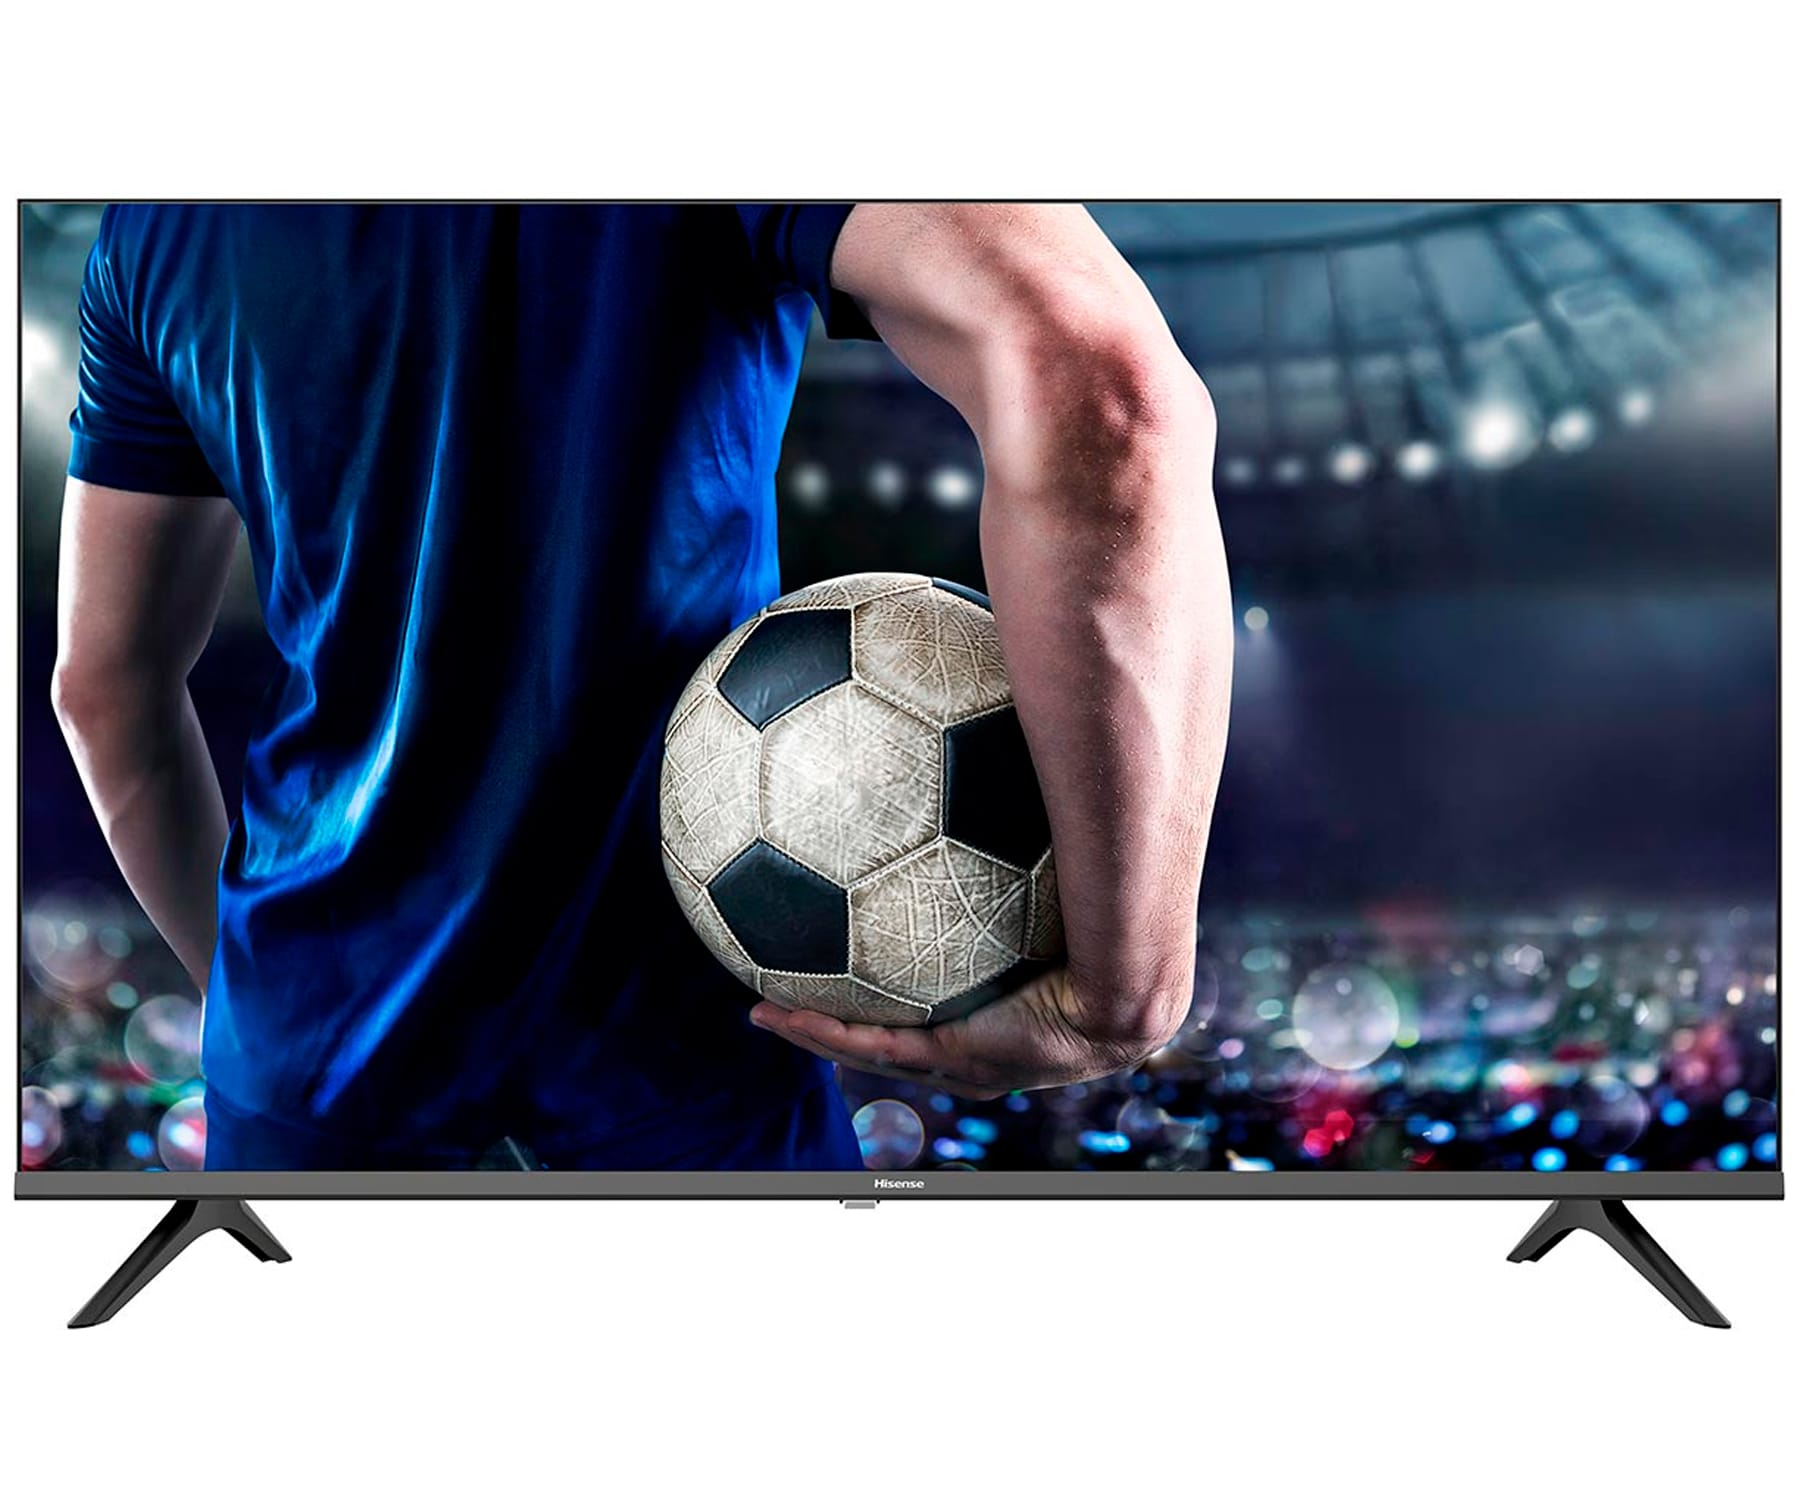 HISENSE H40A5100F TELEVISOR 40'' LCD DIRECT LED FULLHD 900PCI CI+ HDMI USB REPRODUCTOR MULTIMEDIA